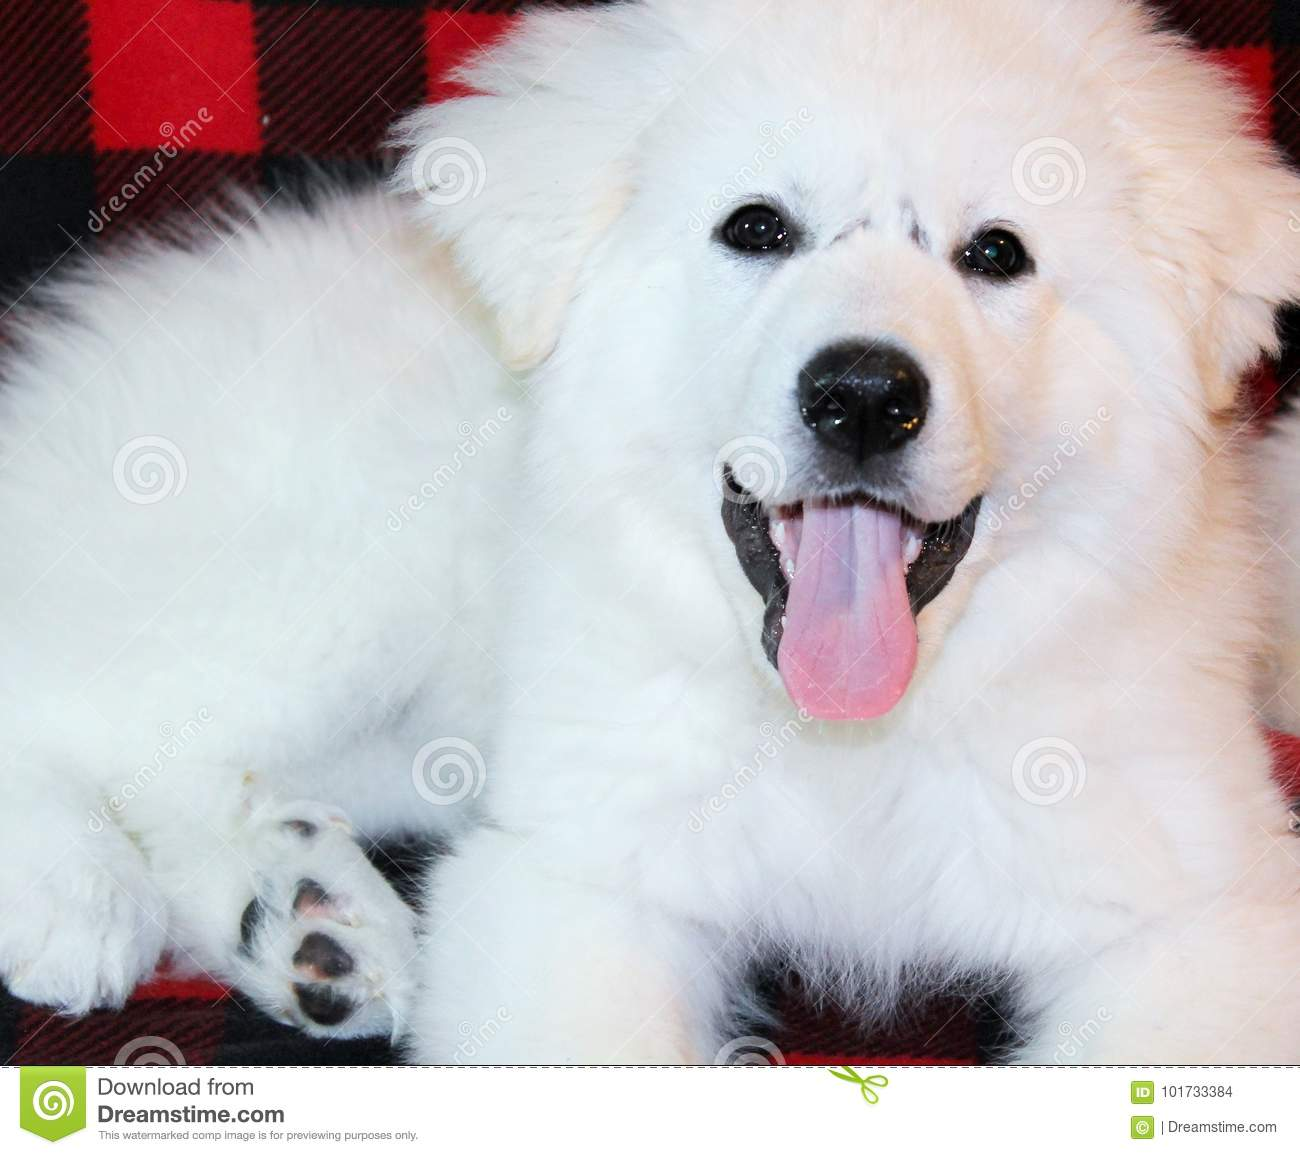 Adorable Great Pyrenees Puppy Panting Stock Photo Image Of